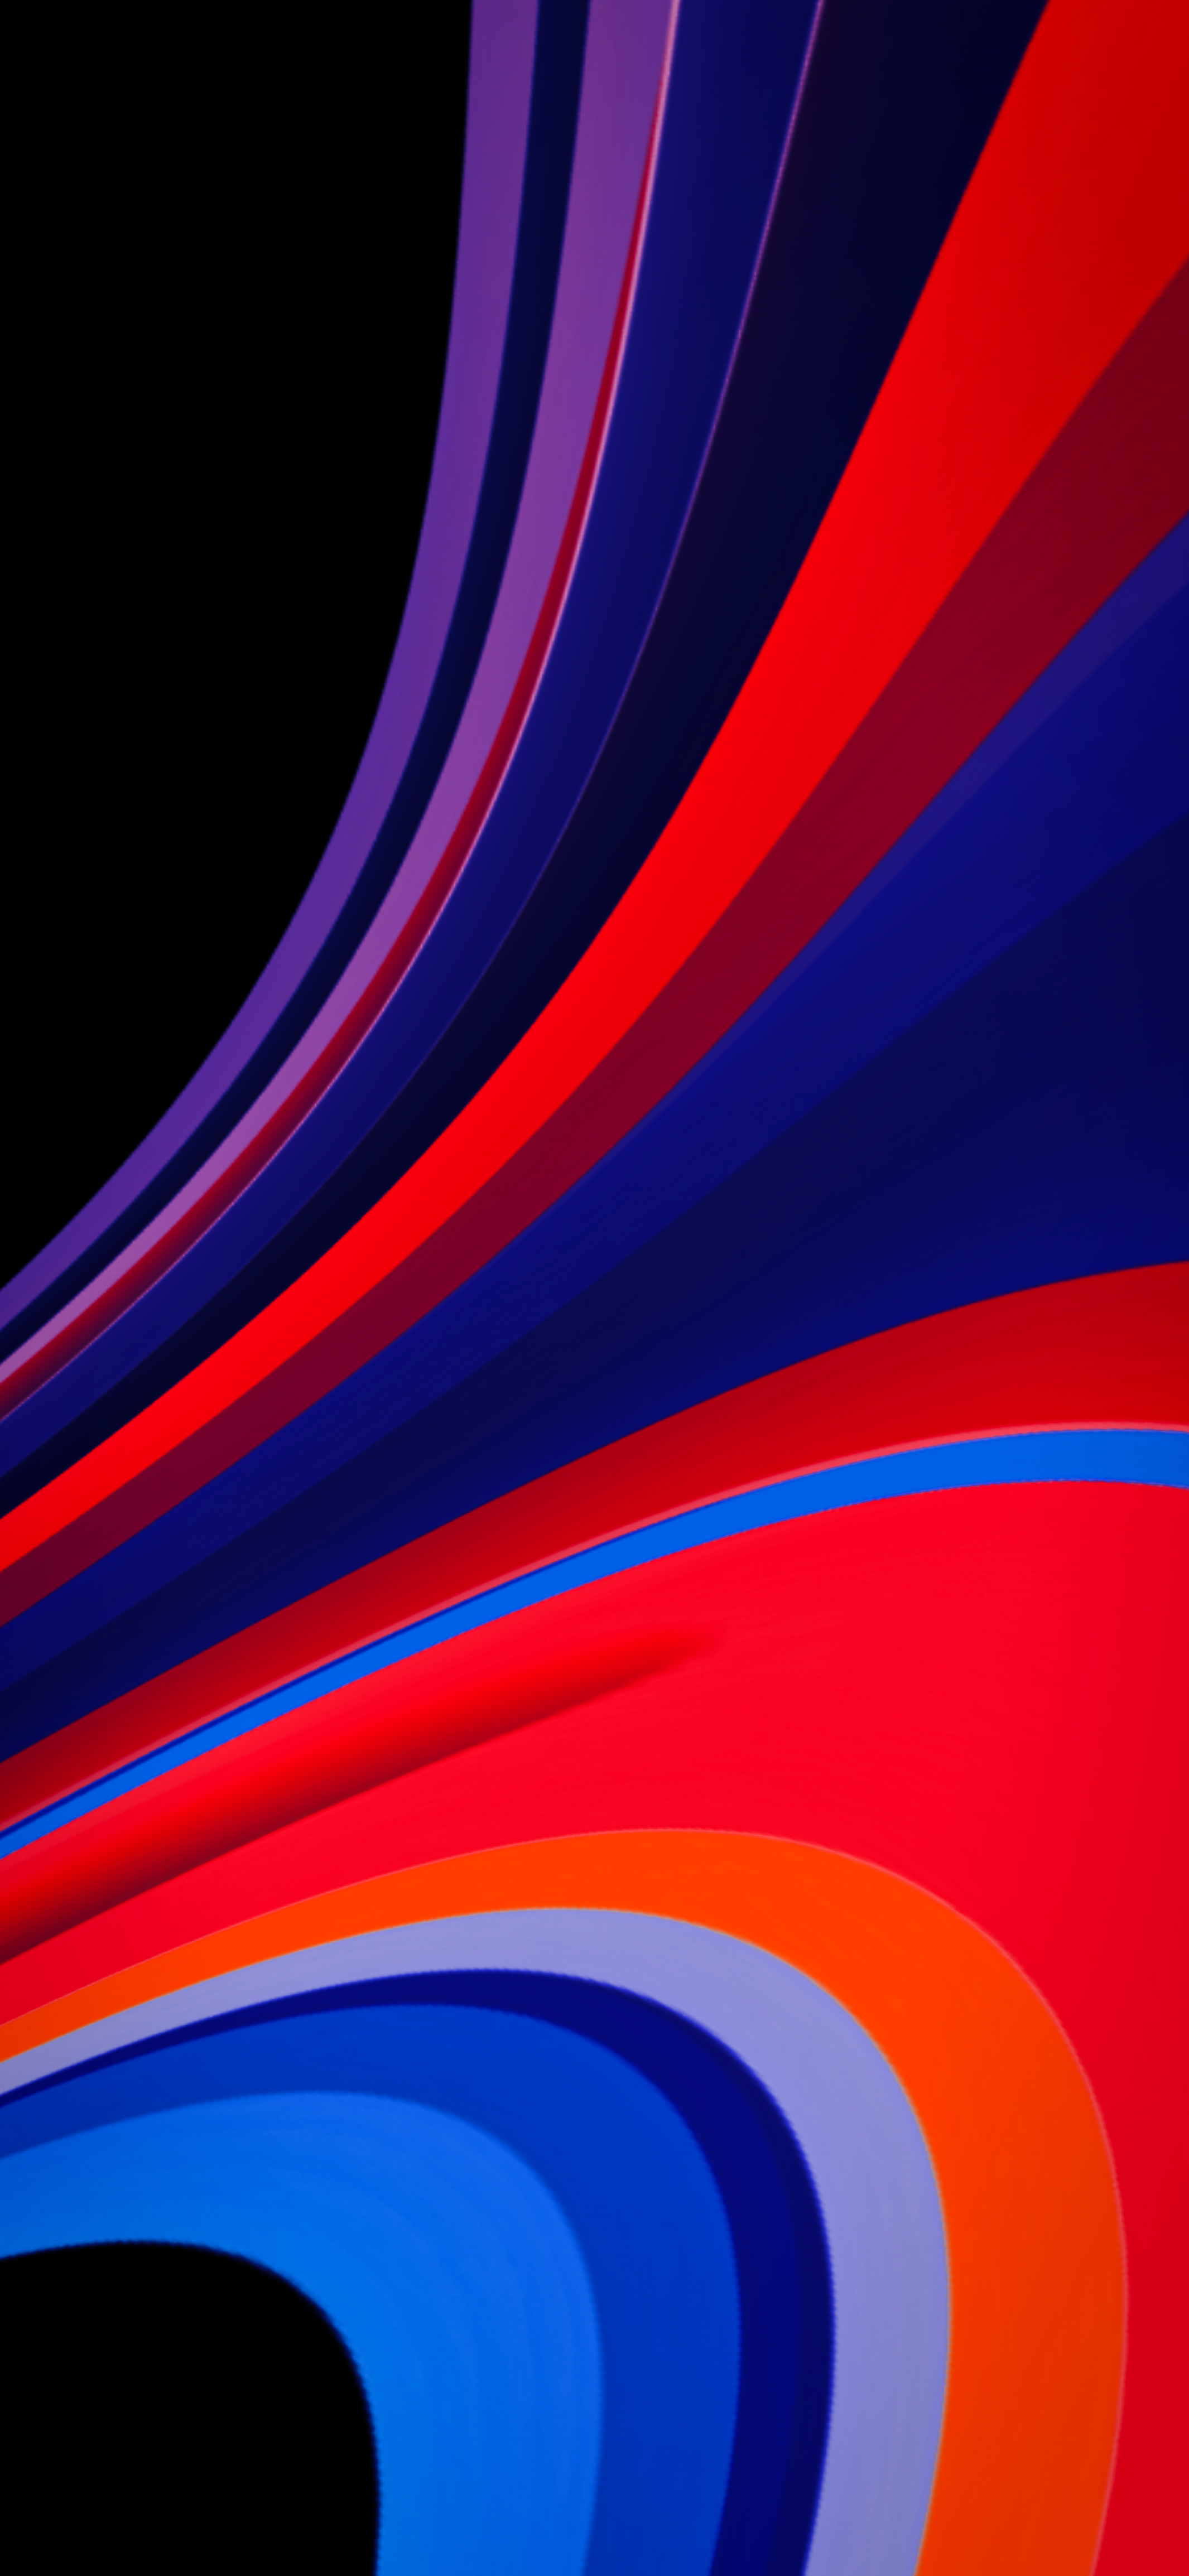 Edges And Curves Wallpapers